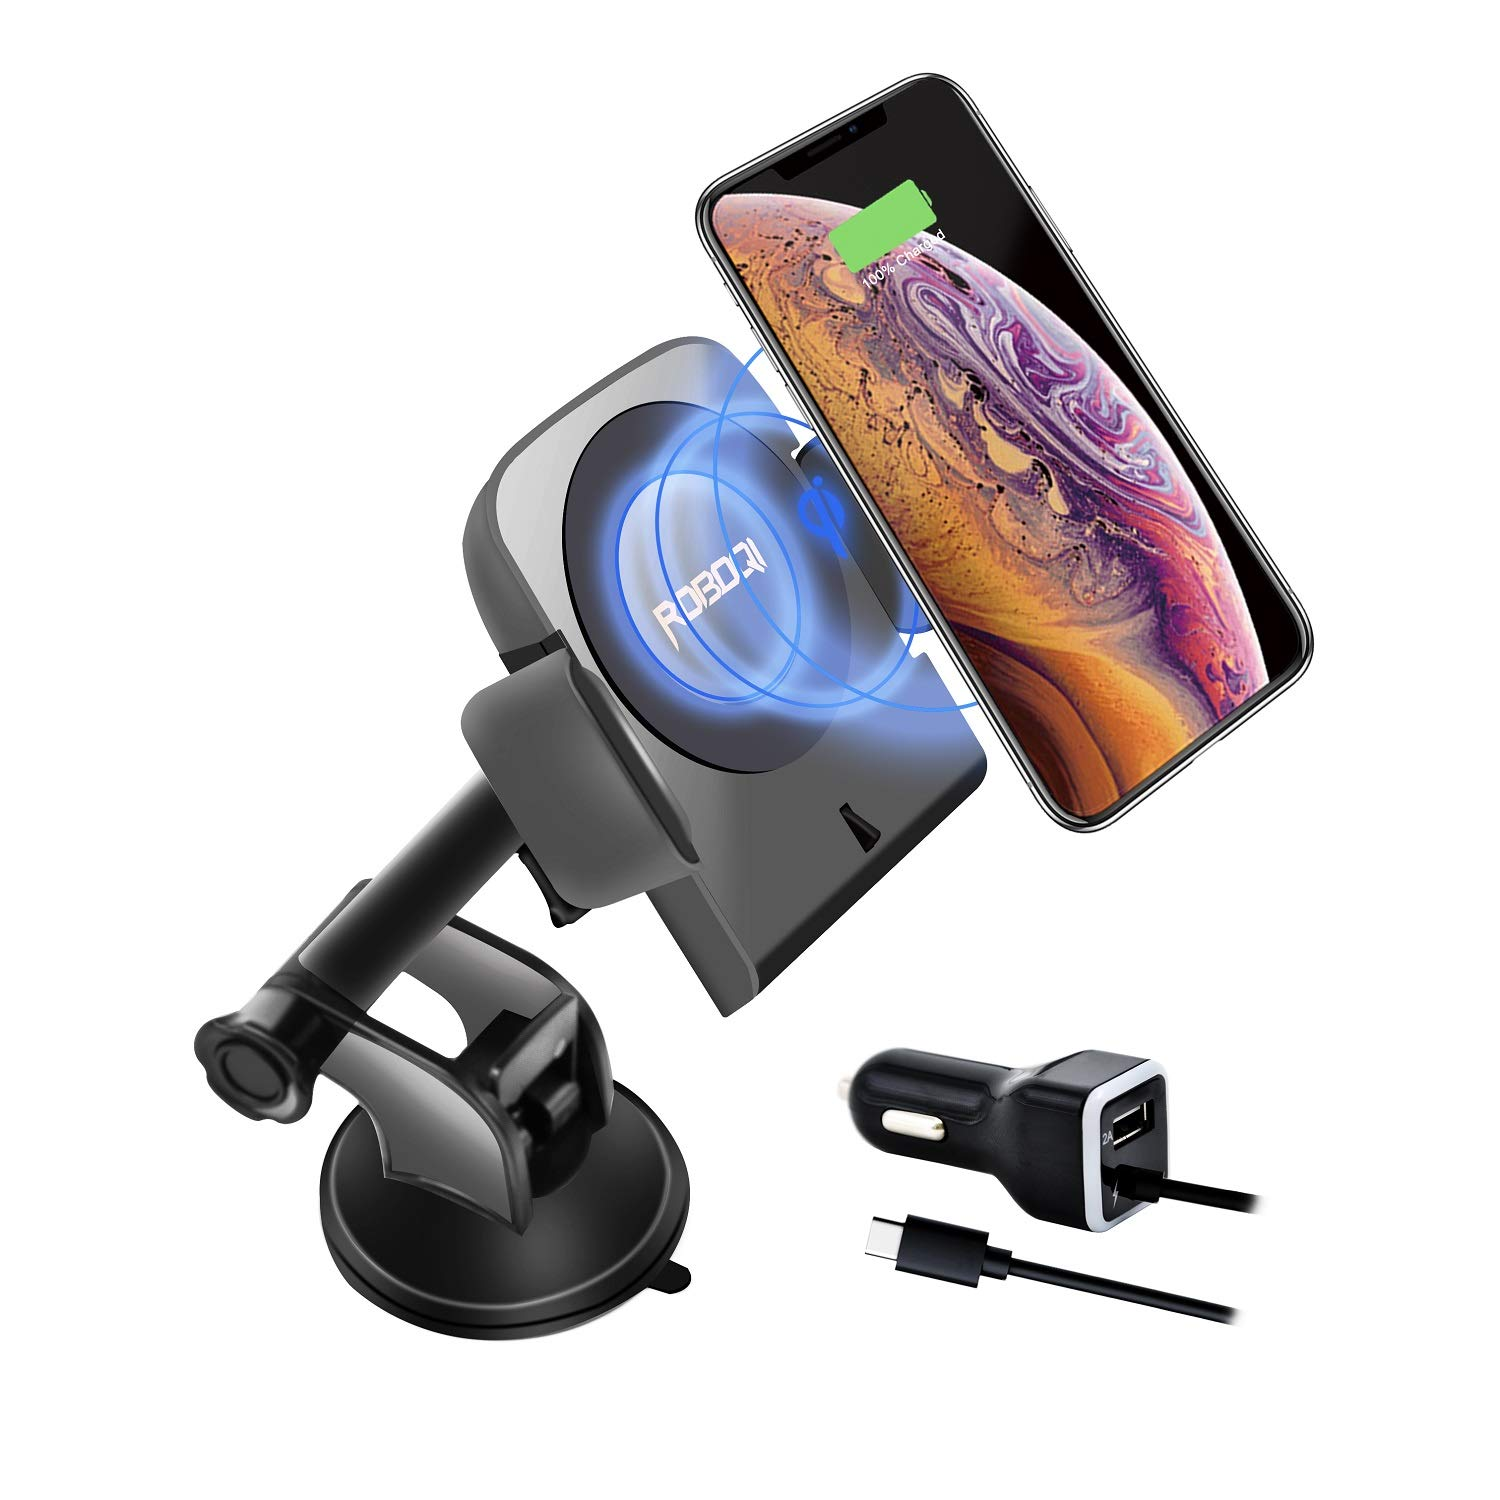 ROBOQI Wireless Car Charger, Automatic Clamping, Fast Charging, Qi-Certified Wireless Charger/Car Phone Holder, Wireless Car Charger Mount for iPhone, Samsung, Galaxy Note, 10w Fast Charging.